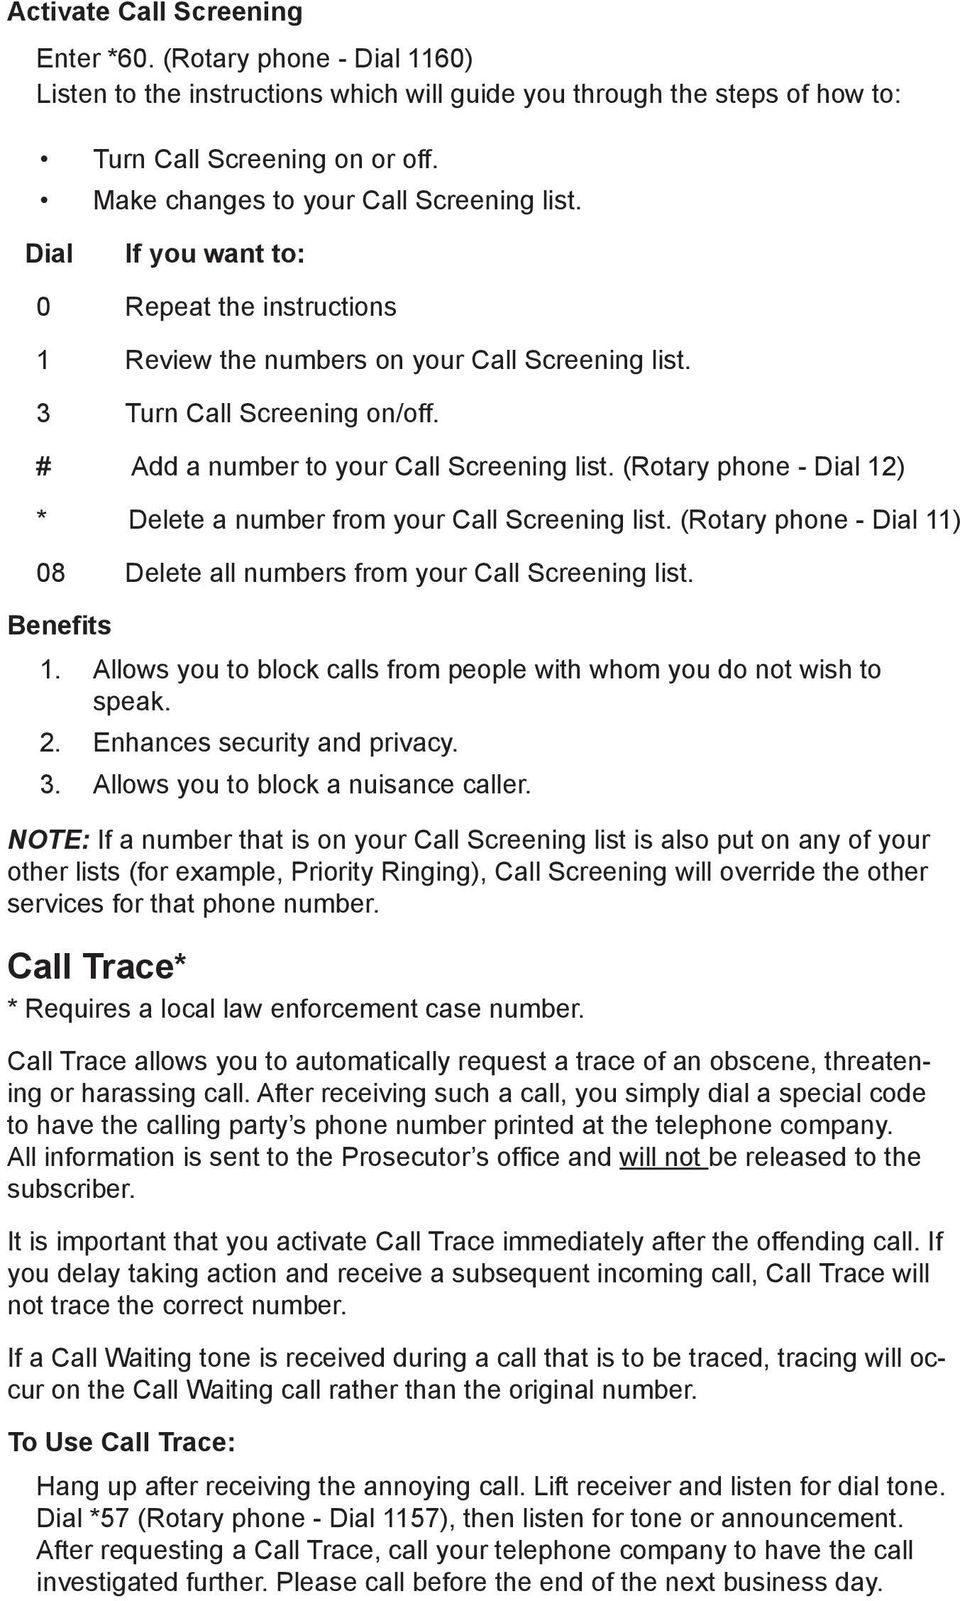 # Add a number to your Call Screening list. (Rotary phone - Dial 12) * Delete a number from your Call Screening list. (Rotary phone - Dial 11) 08 Delete all numbers from your Call Screening list. 1. Allows you to block calls from people with whom you do not wish to speak.